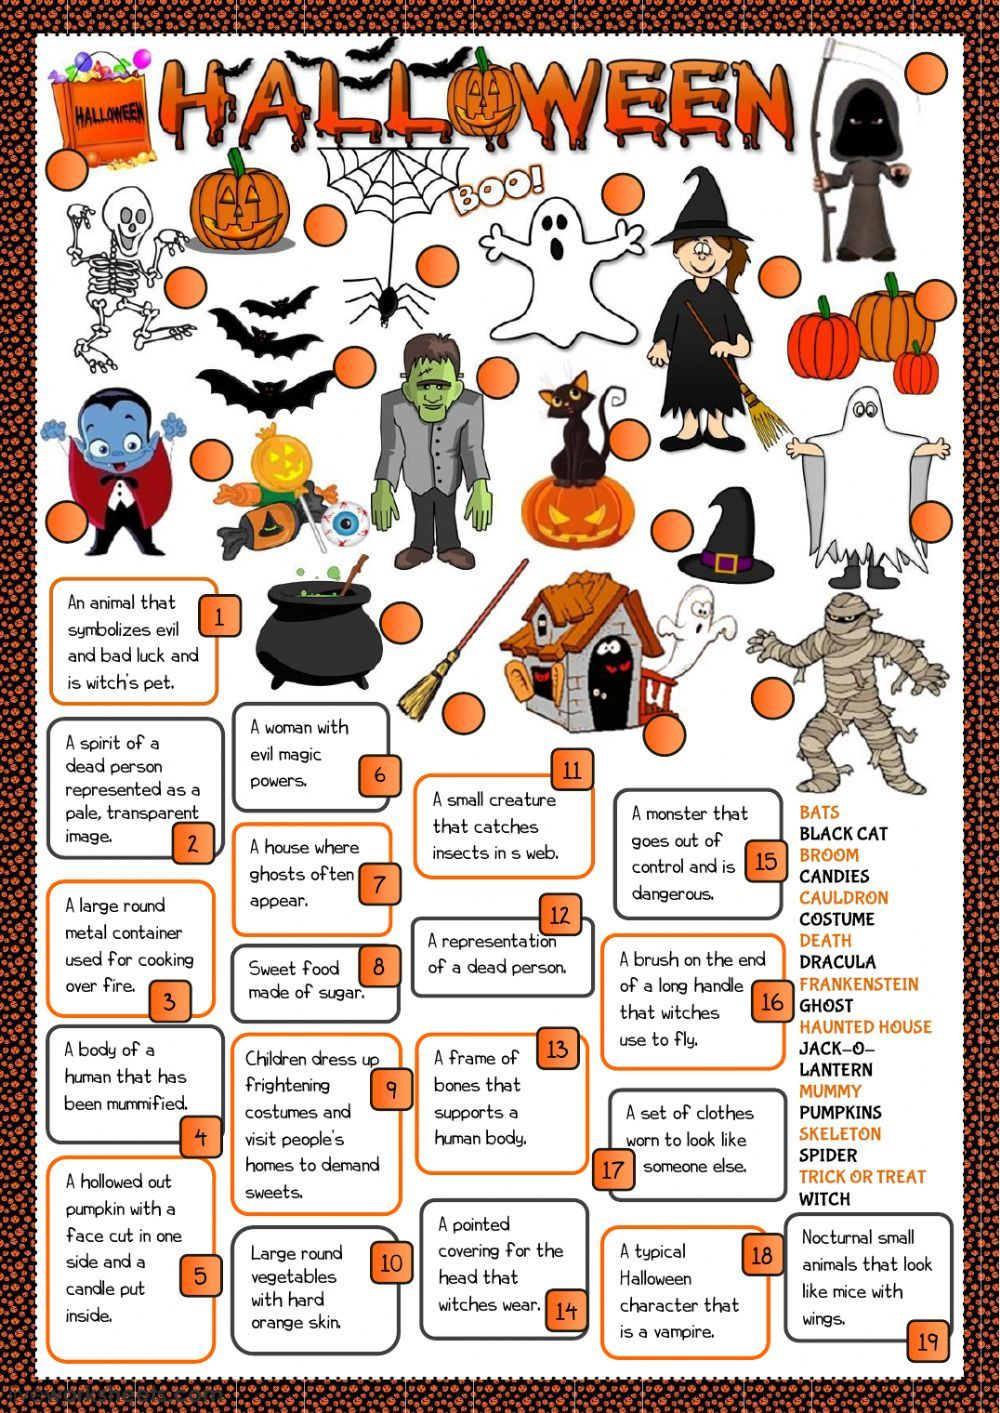 Halloween Interactive And Downloadable Worksheet You Can Do The Exercises Online Or Download The Wo Halloween Worksheets Halloween Lesson Halloween Activities